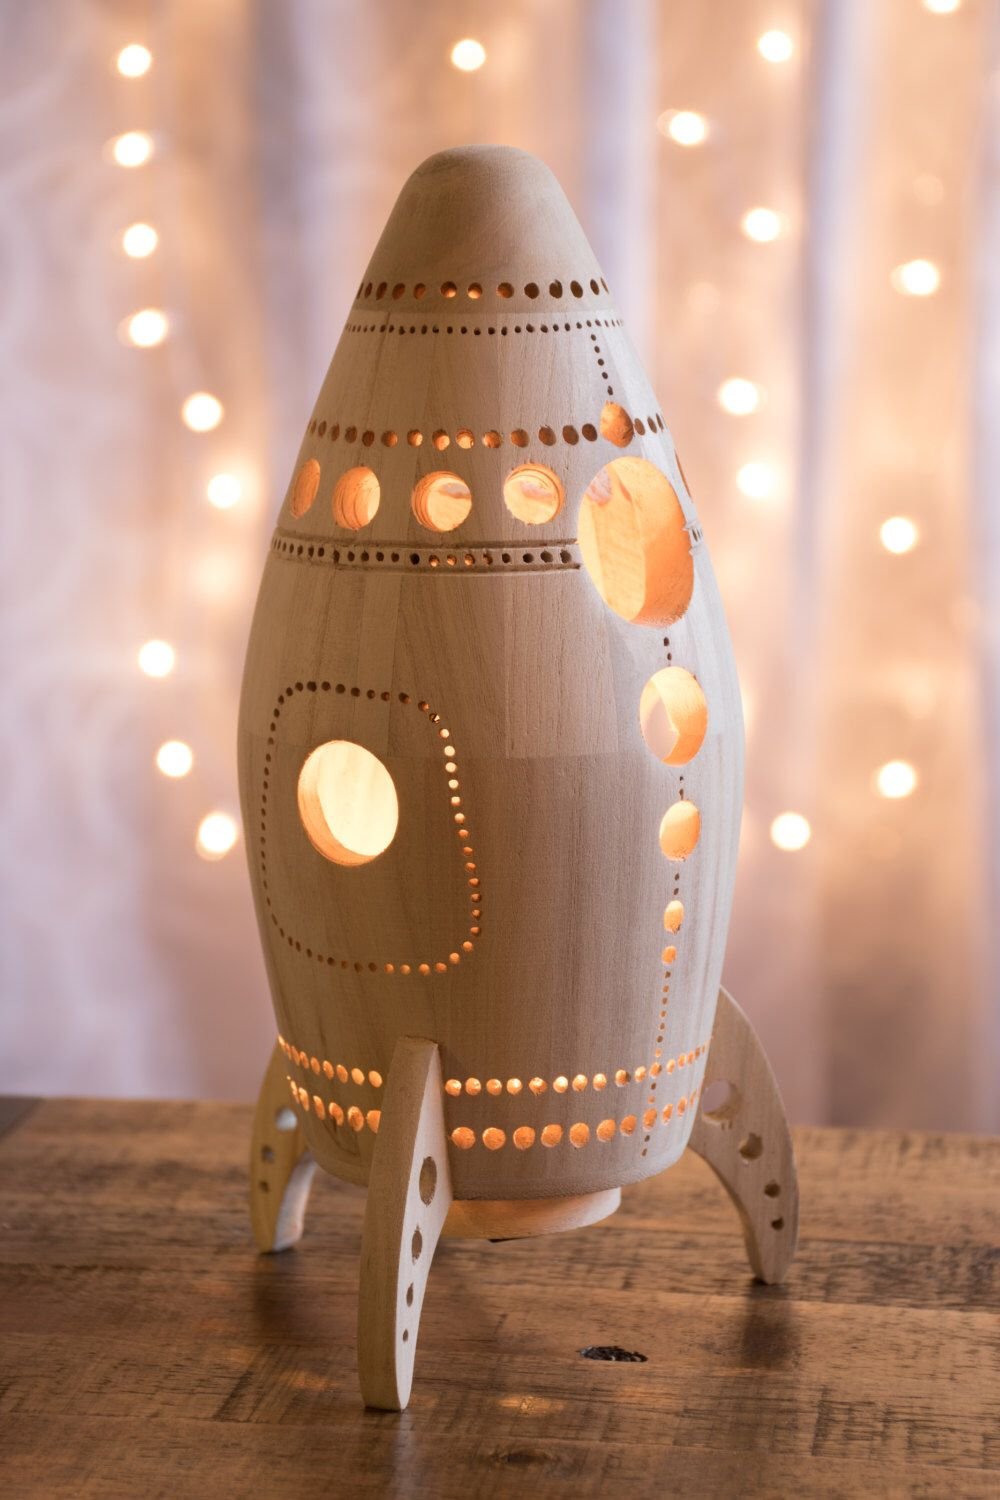 Wooden Rocket Night Light Spaceship Nightlight Lantern